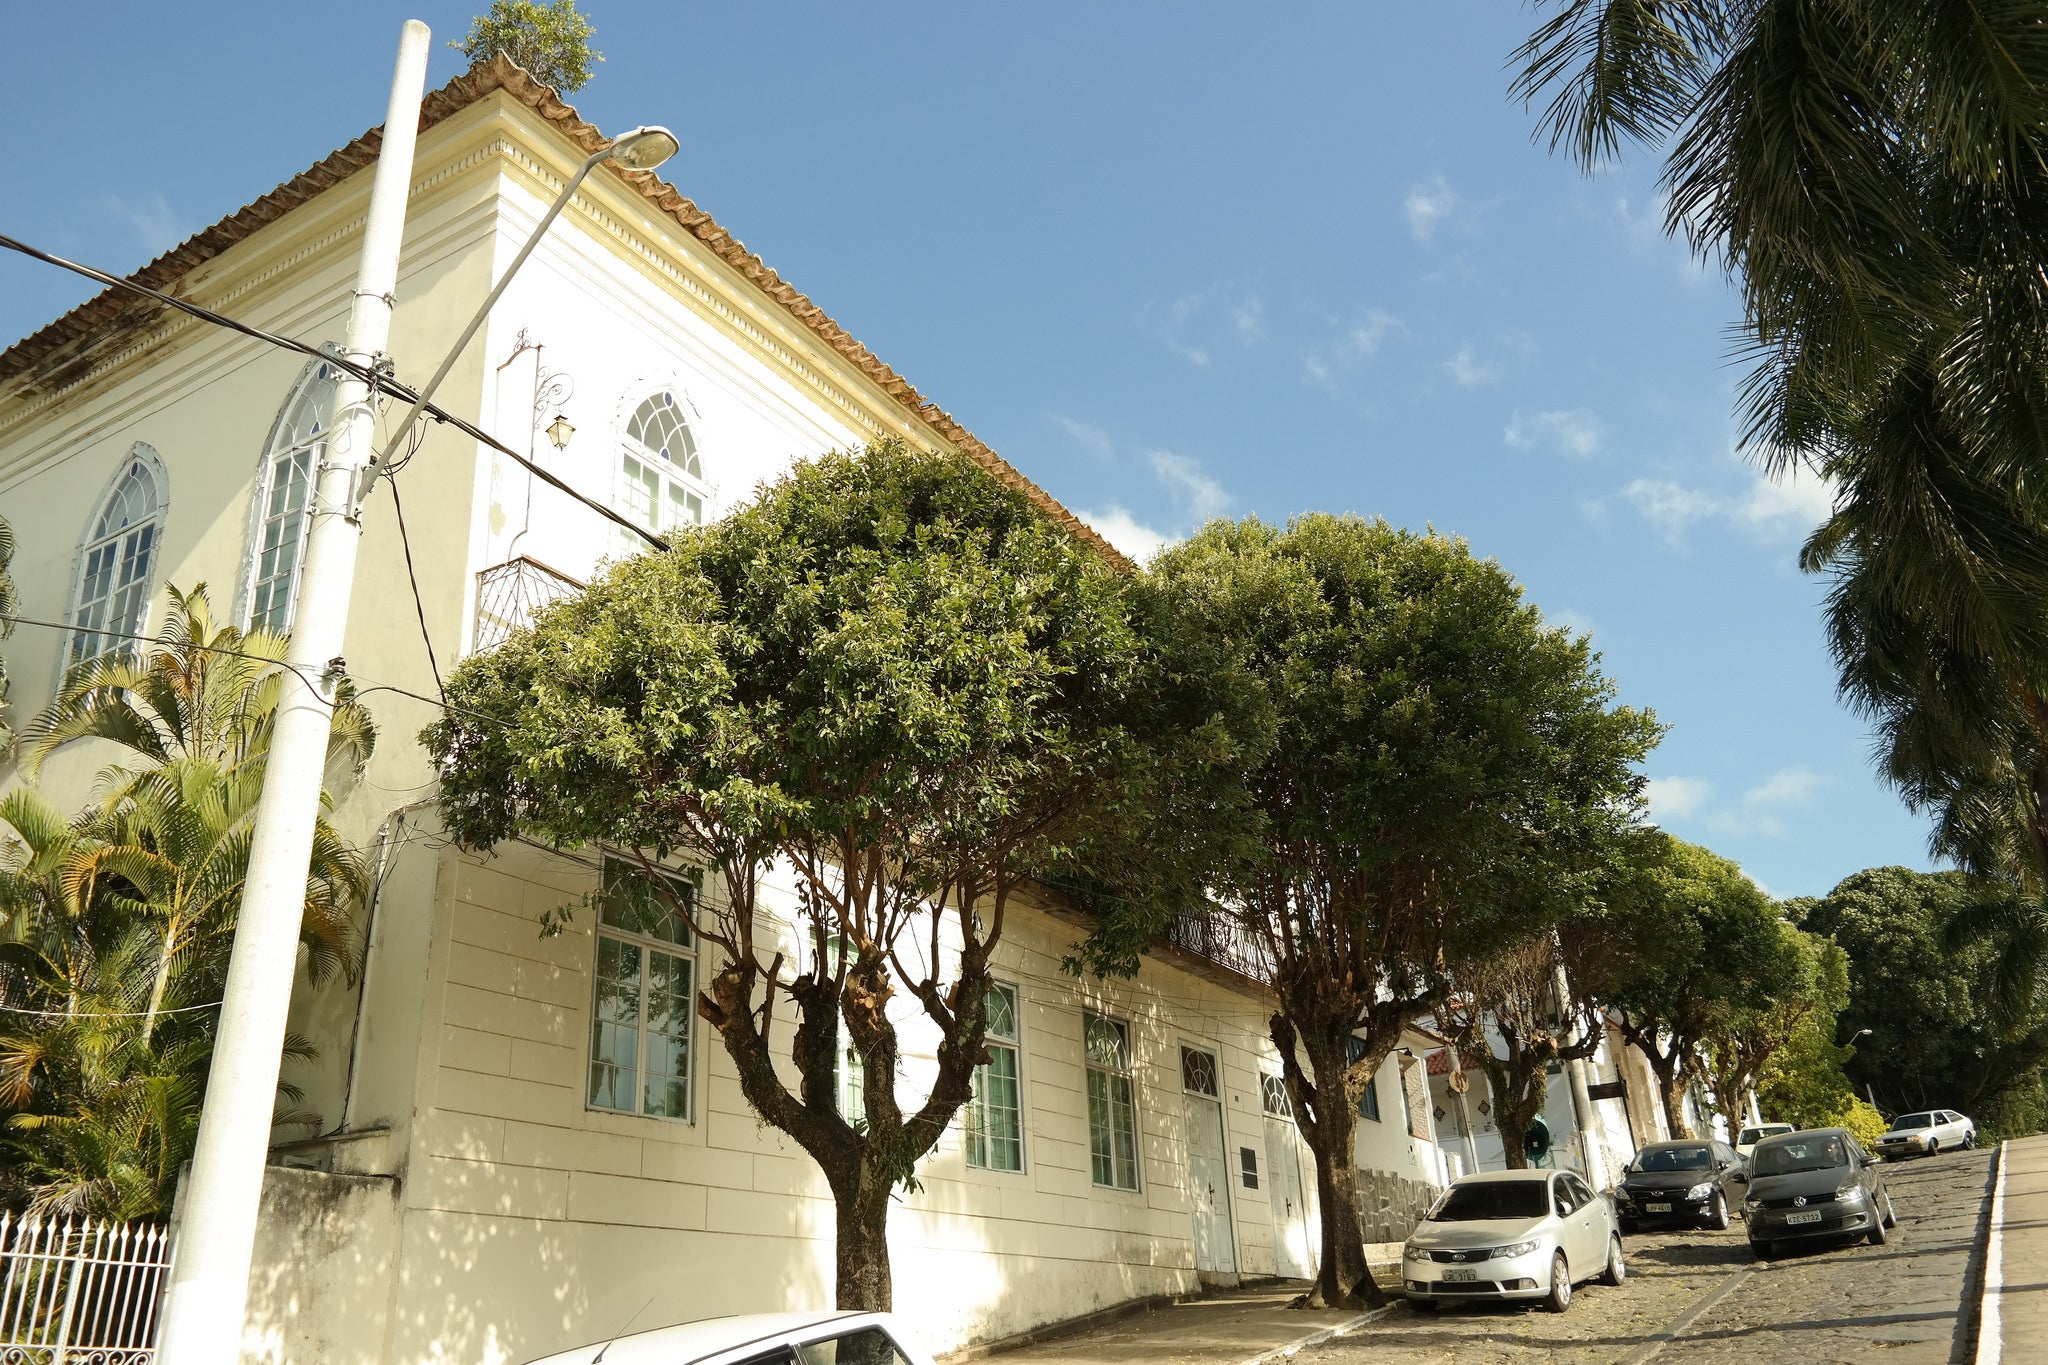 Casa de Cultura Presidente Tancredo Neves